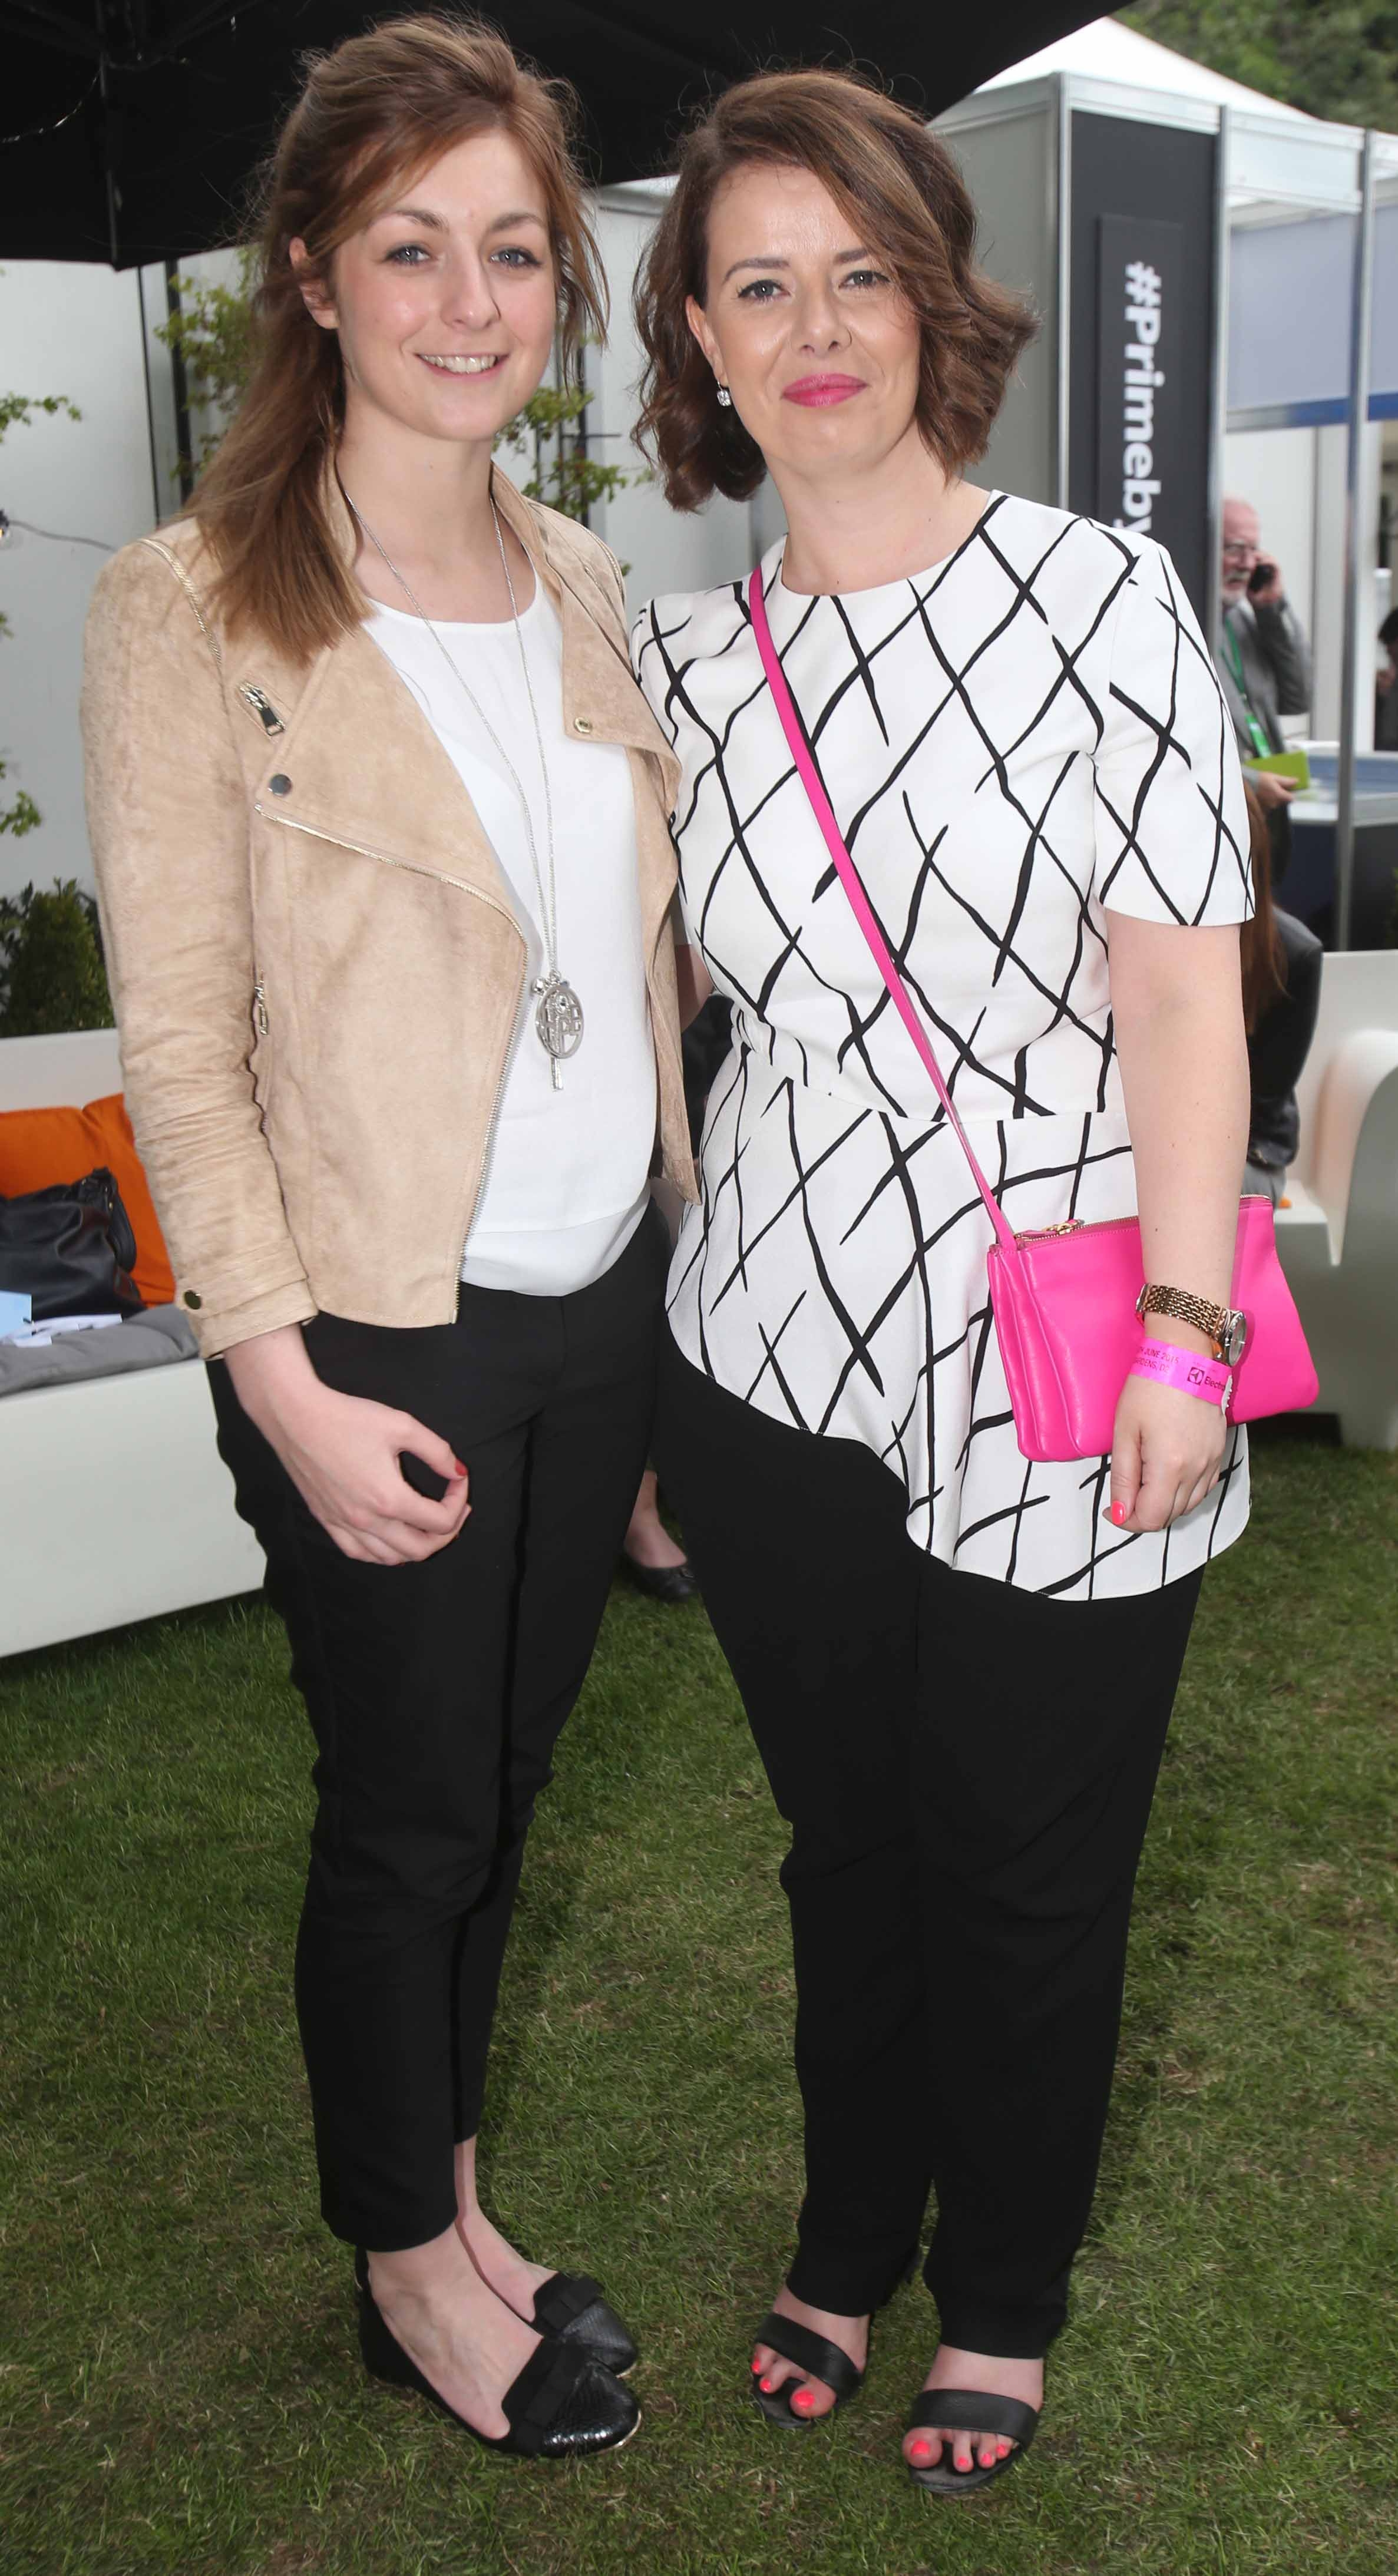 Laura Dunne and Rosie McMeel at the Aldi restaurant at a Taste of Dublin festival in the Iveagh Gardens Dublin. Photo: Leon Farrell/Photocall Ireland.